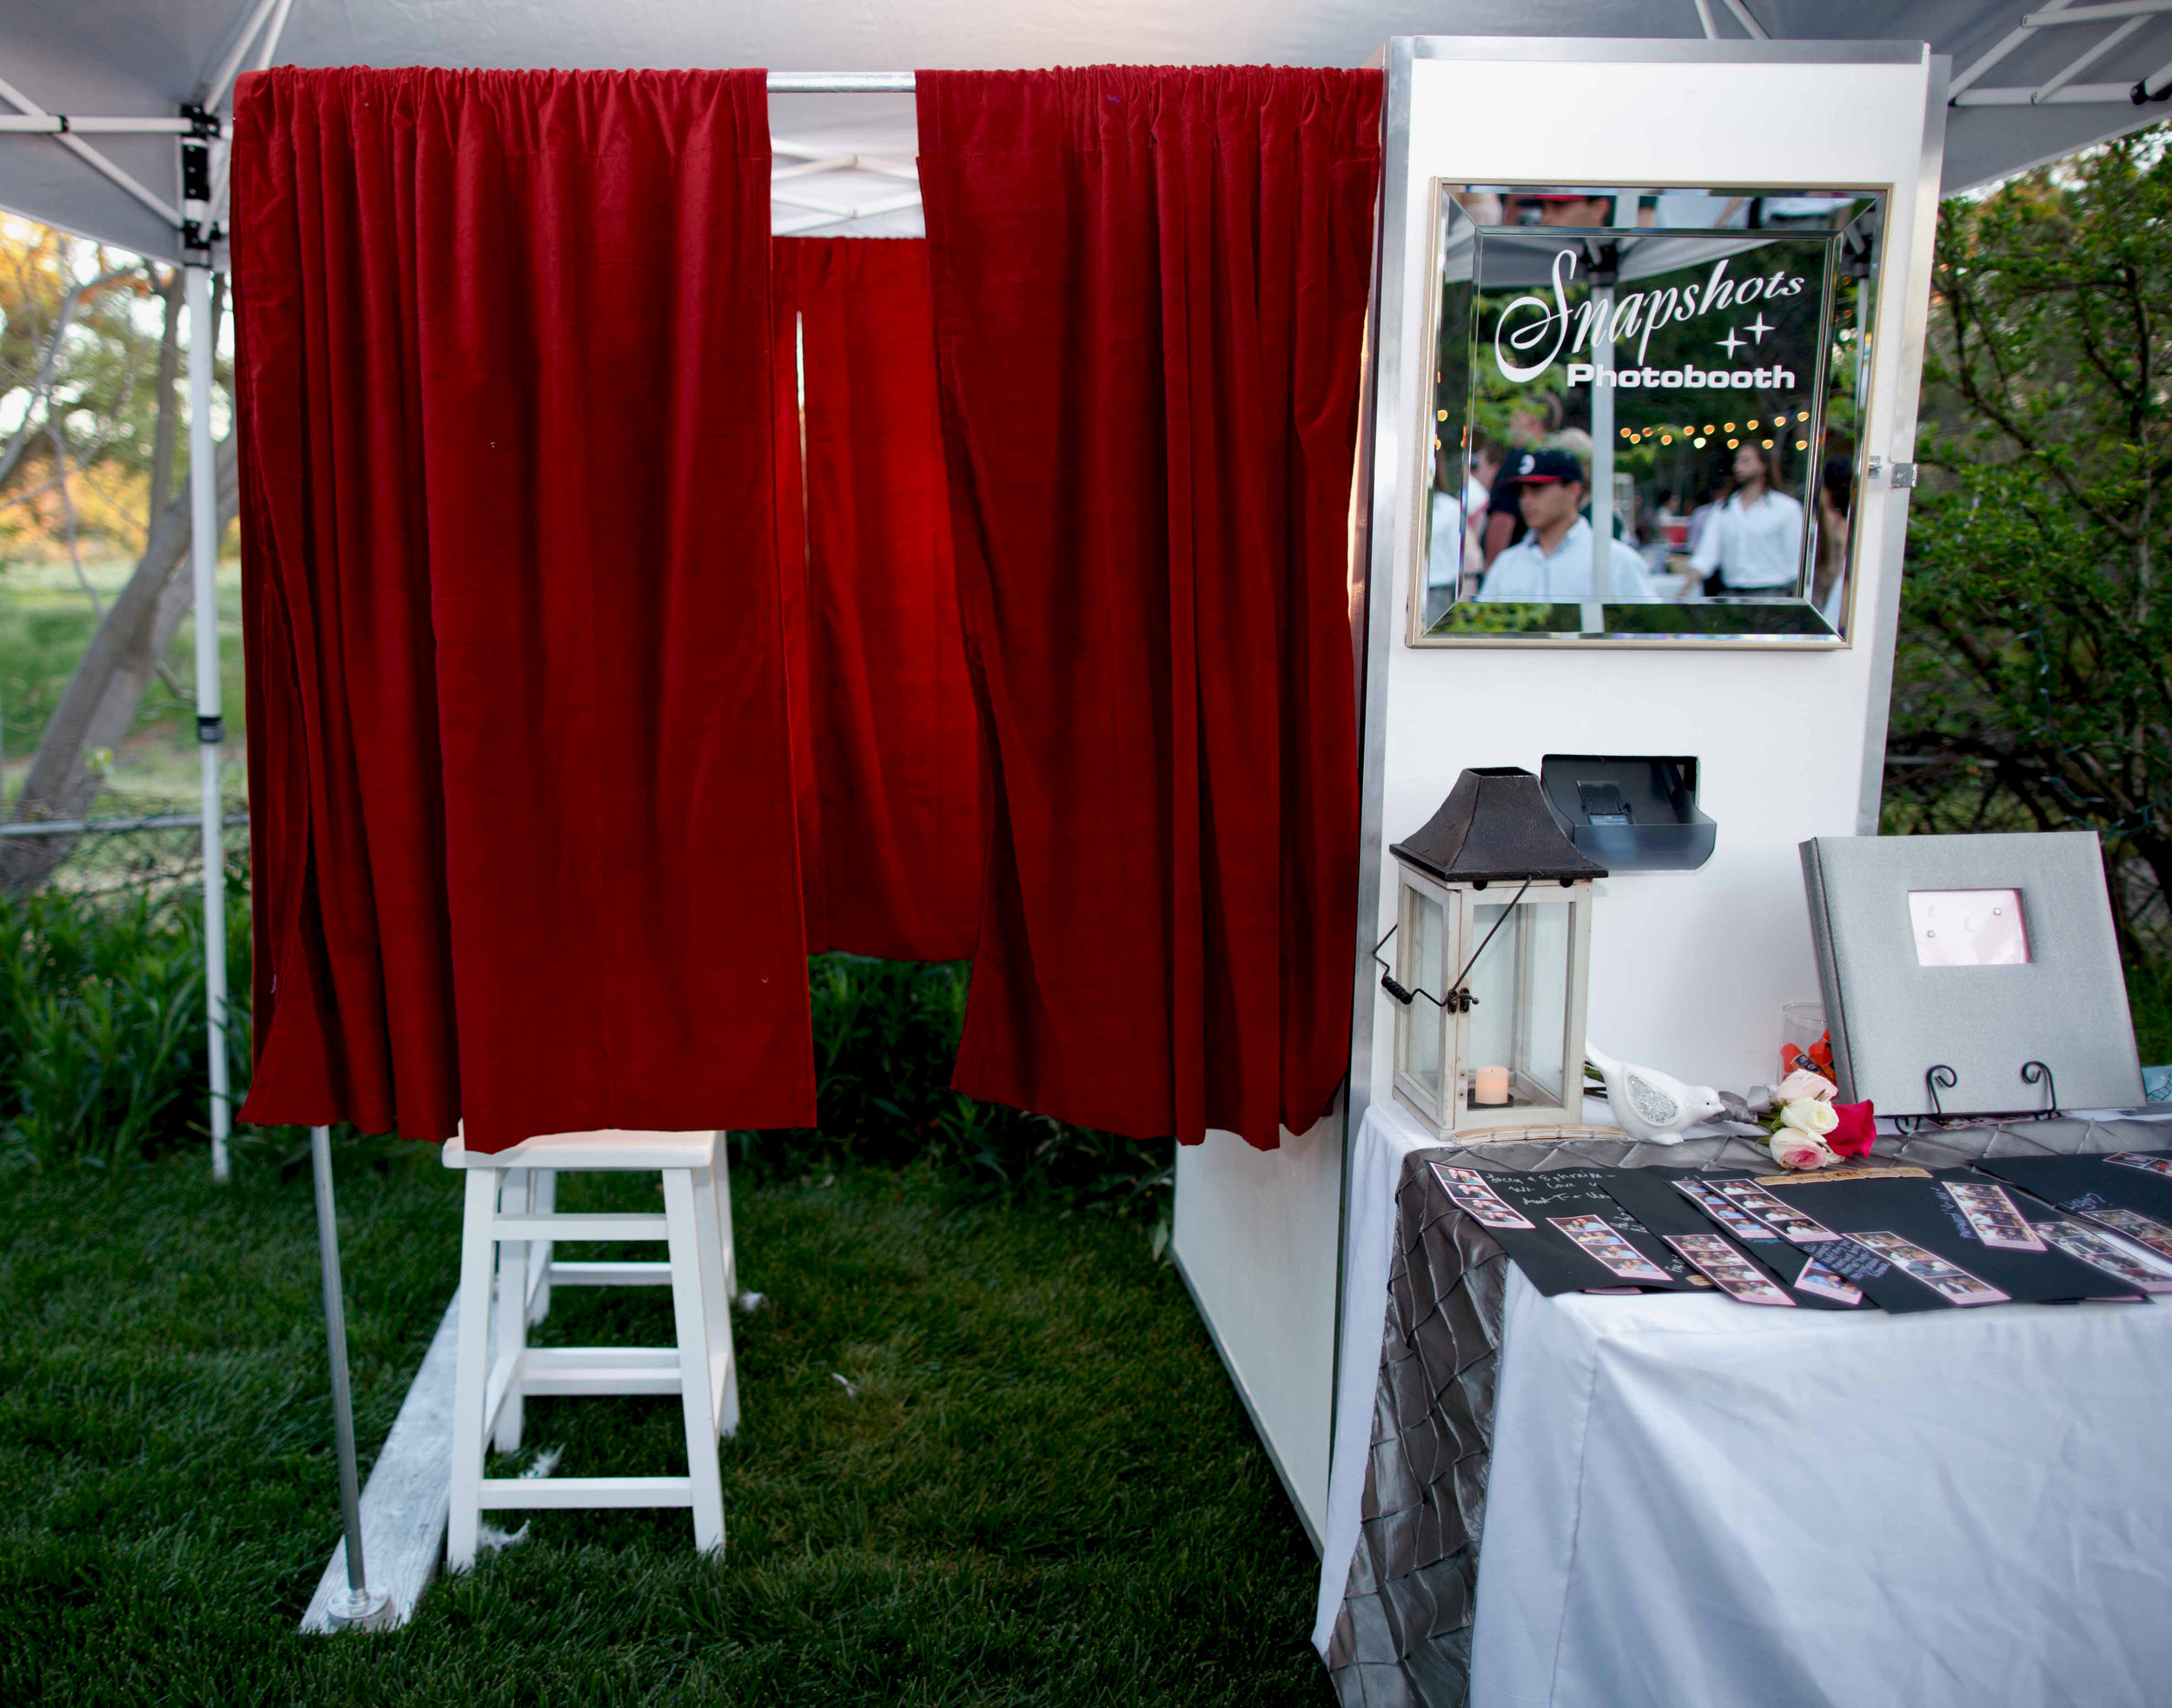 Photobooth - Find out about our five amazing photo booths and all that's included!